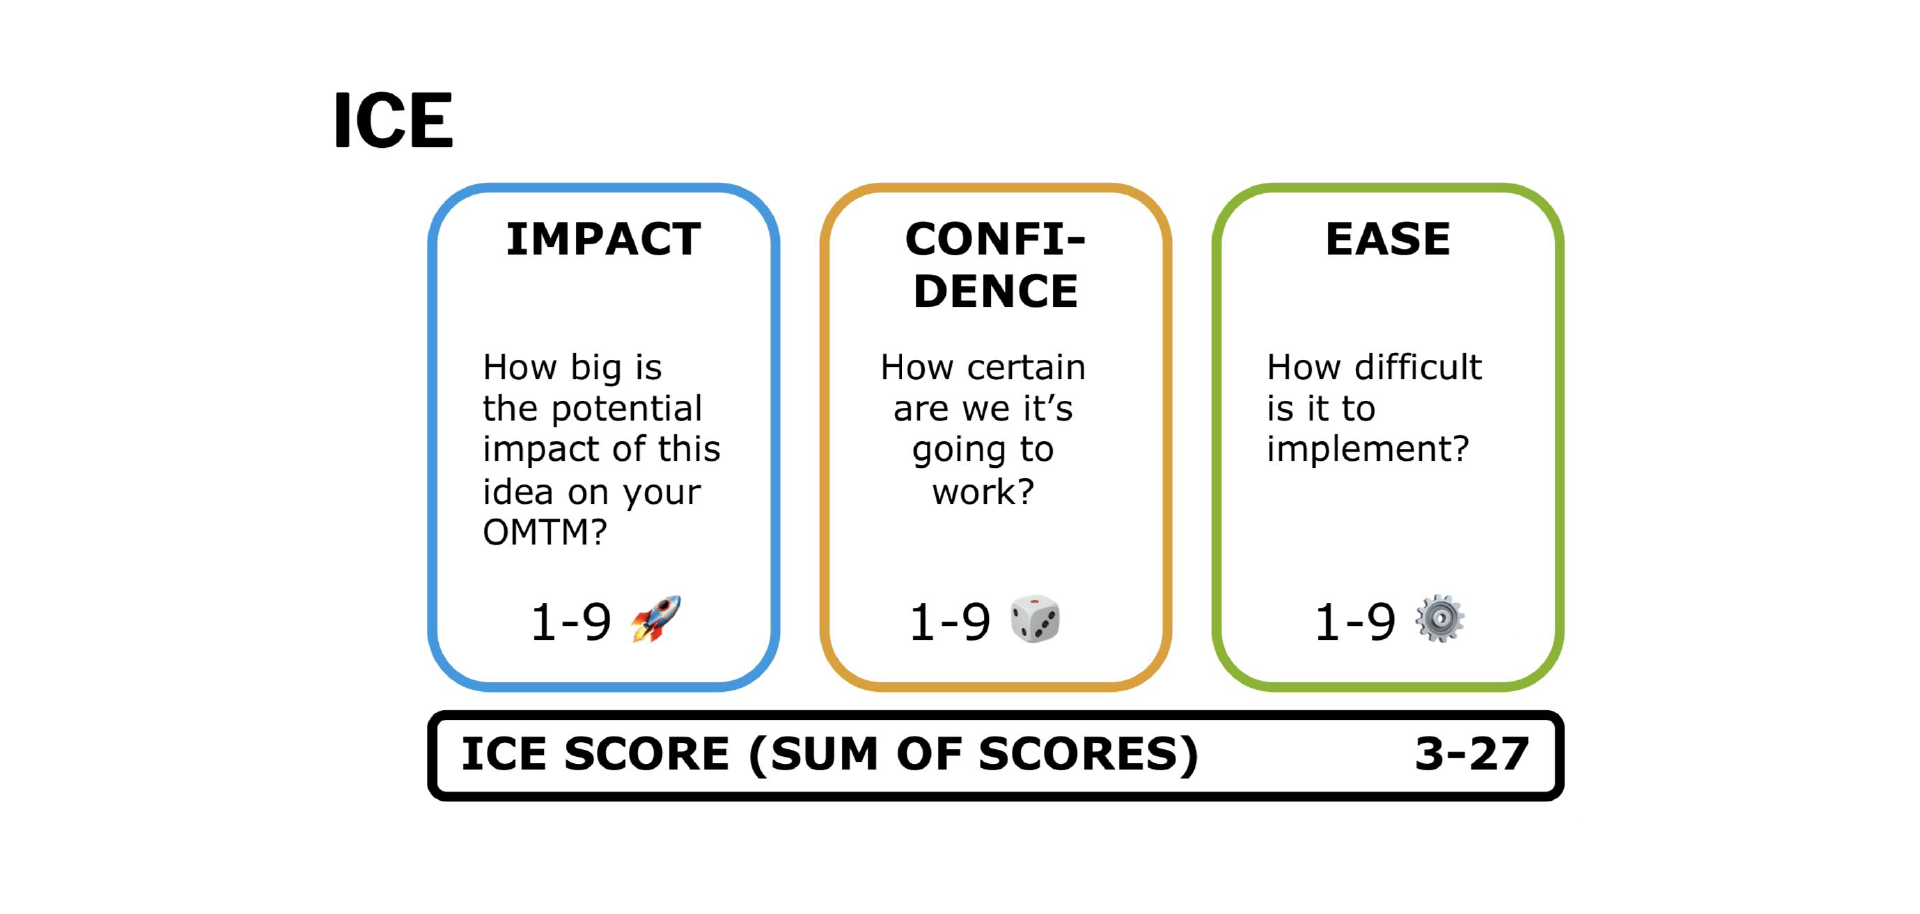 ICE - Impact / Confidence / Ease